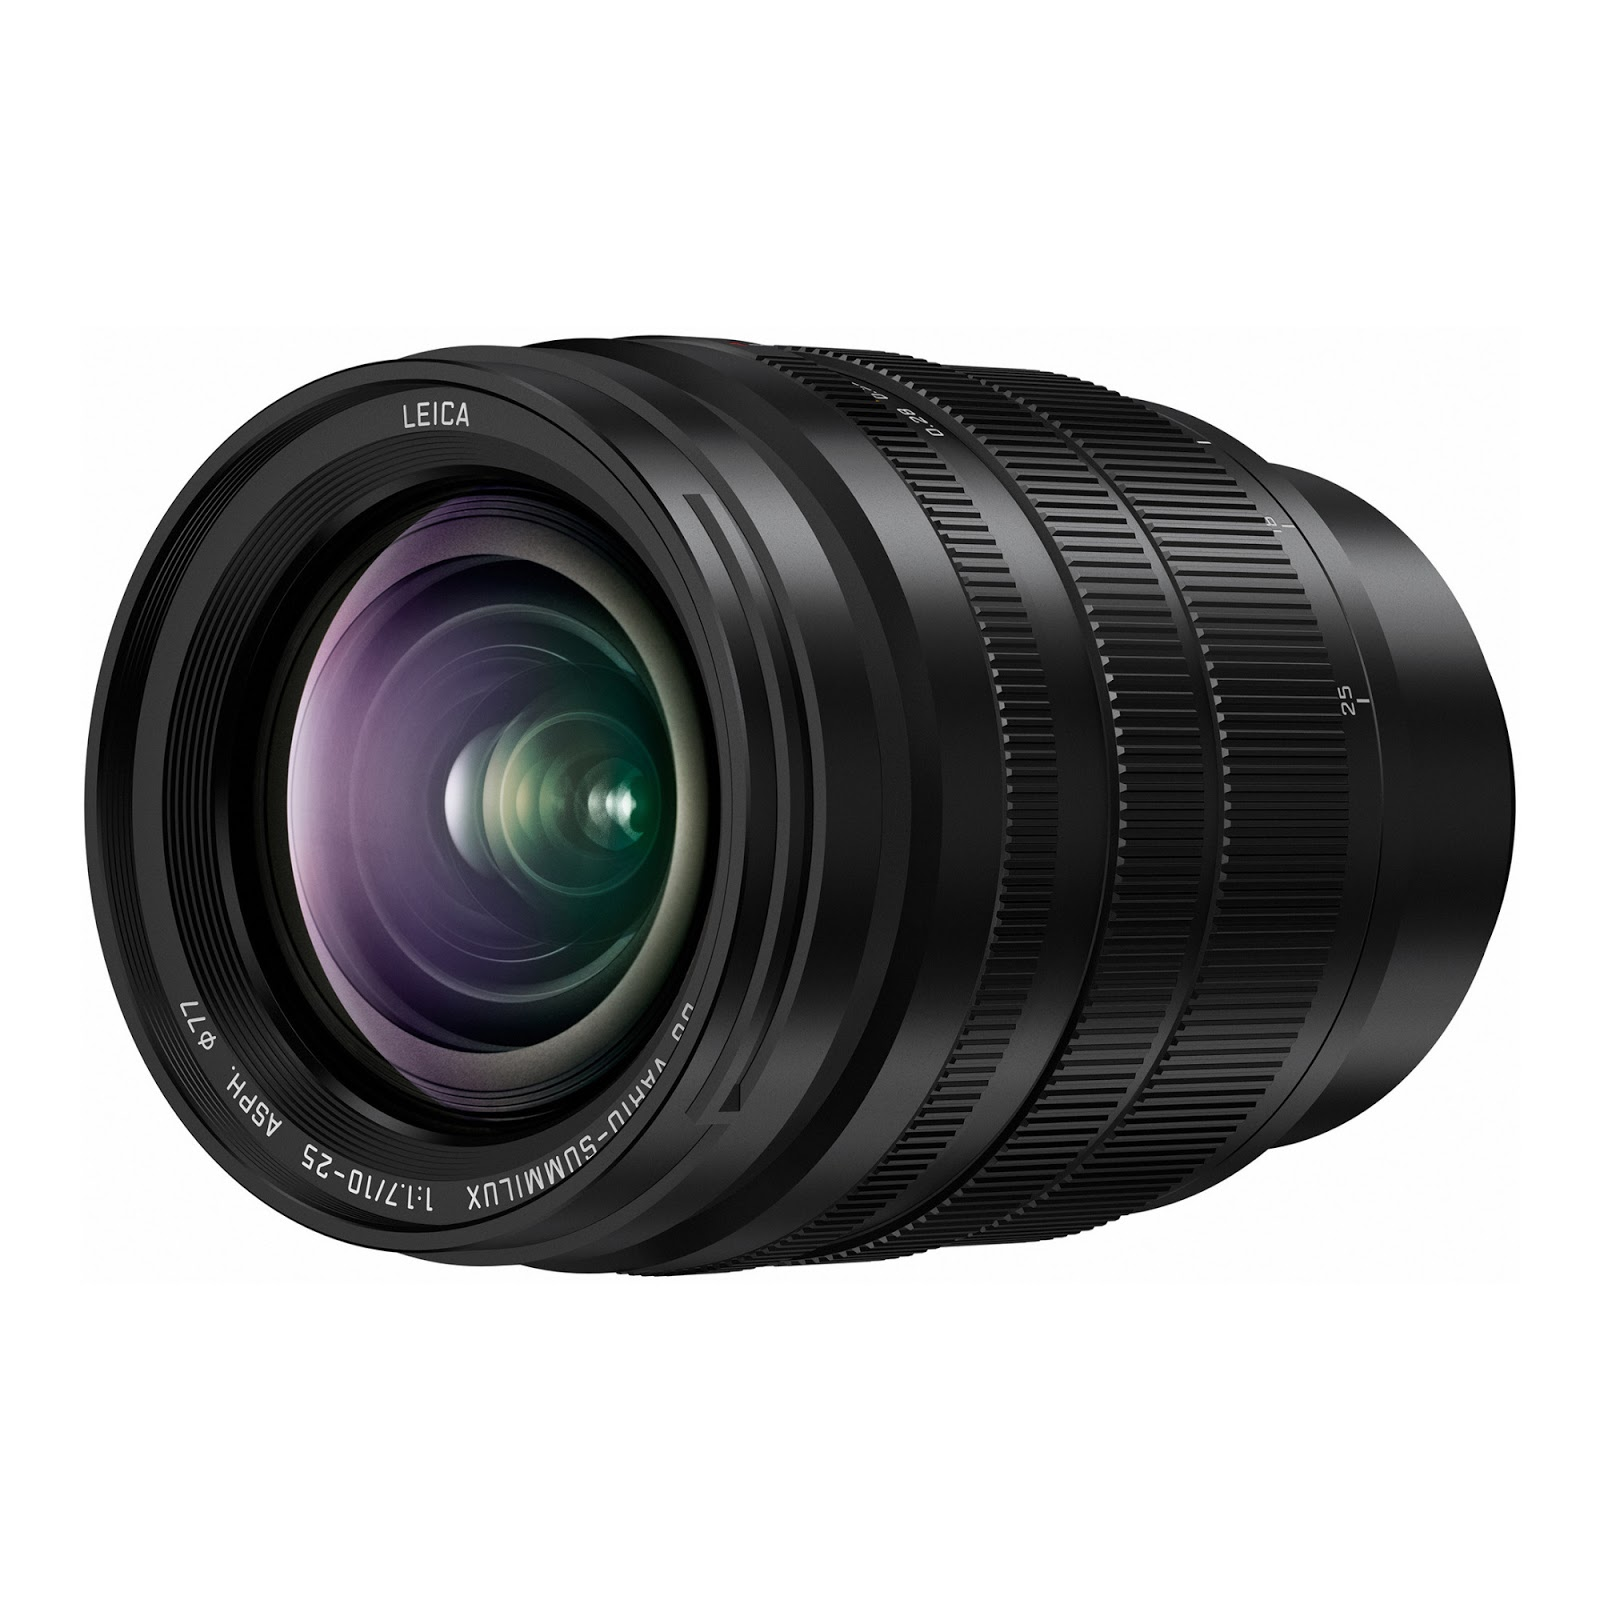 Panasonic Leica 10-25mm f/1.7 ASPH MFT Lens Officially Announced